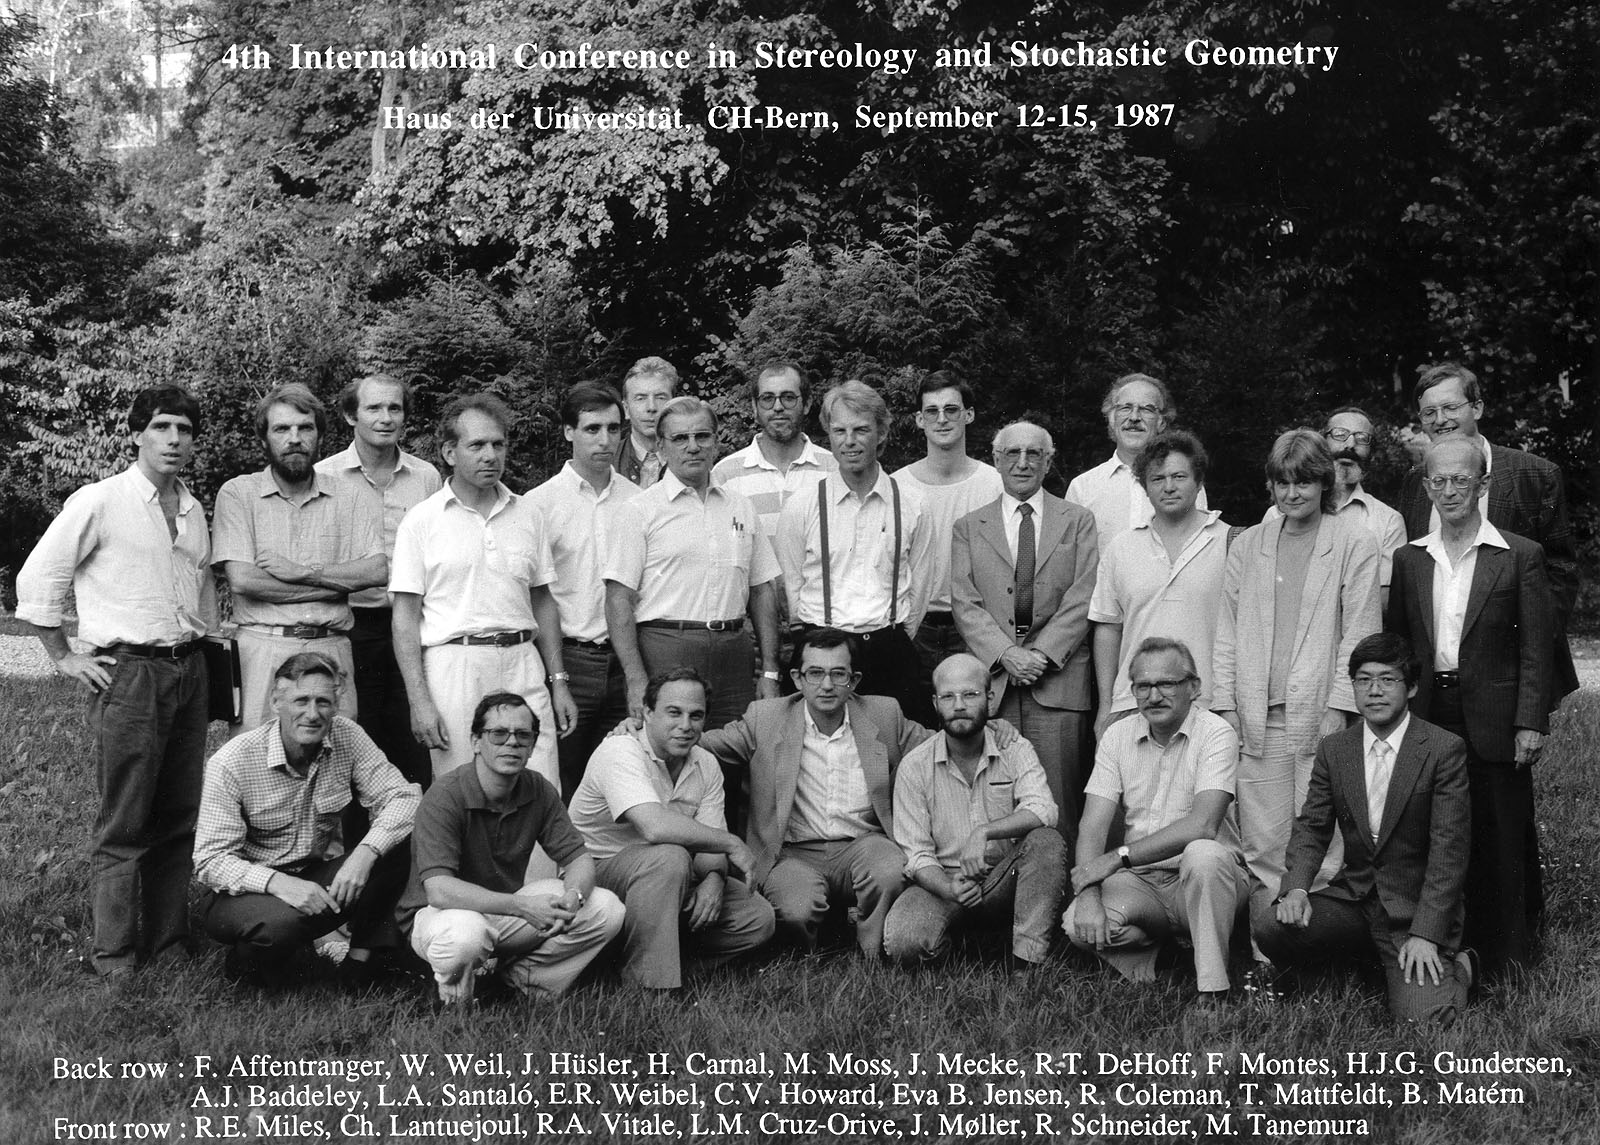 Hans Jørgen Gottlieb Gundersen at the 4th International Conference on Stereology and Stochastic Geometry (Bern, 1987)